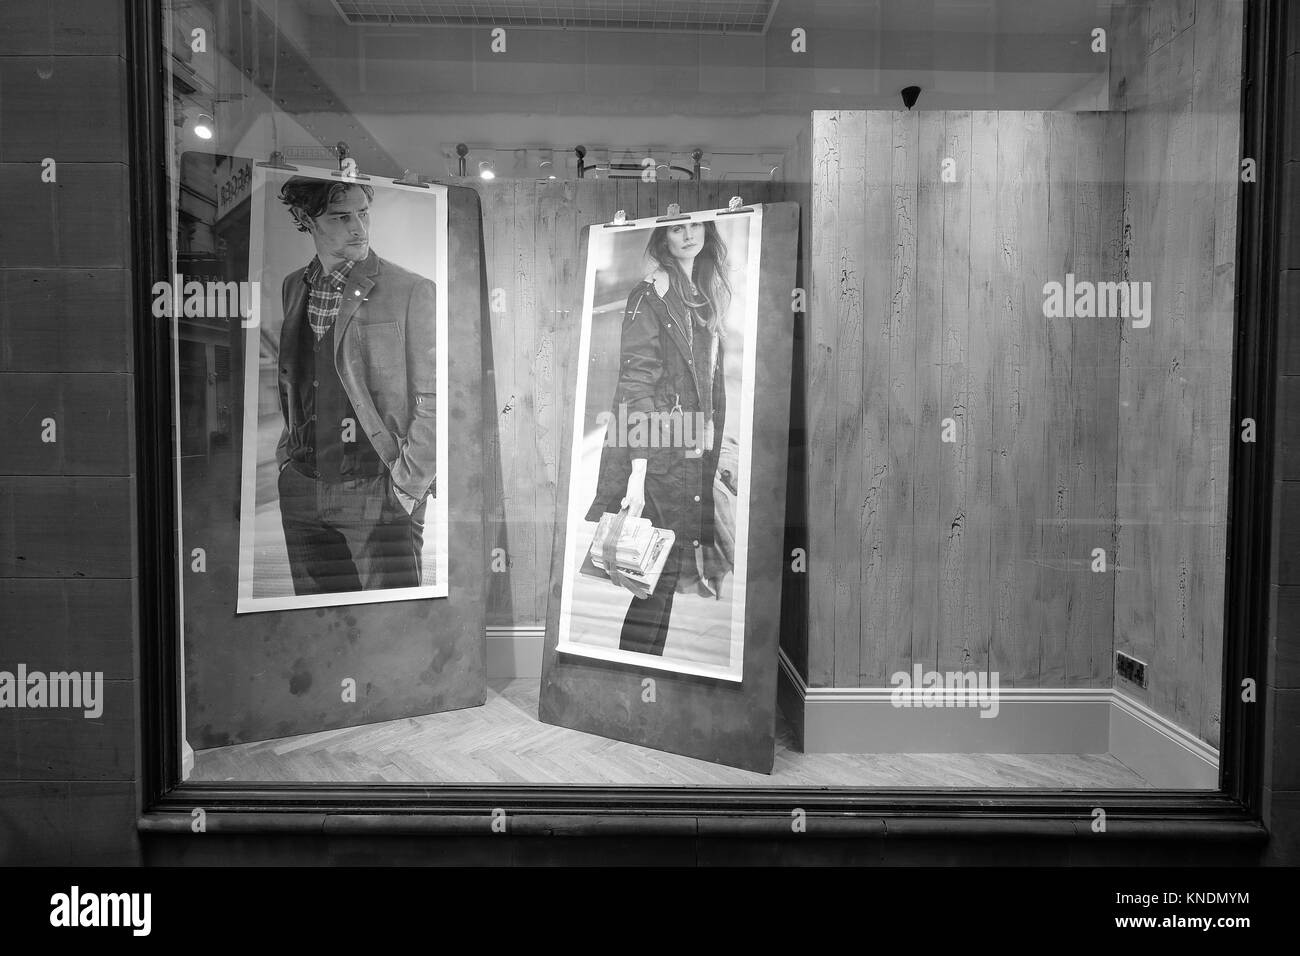 Shop window with two posters one of a man one of a woman looking at each other - Stock Image